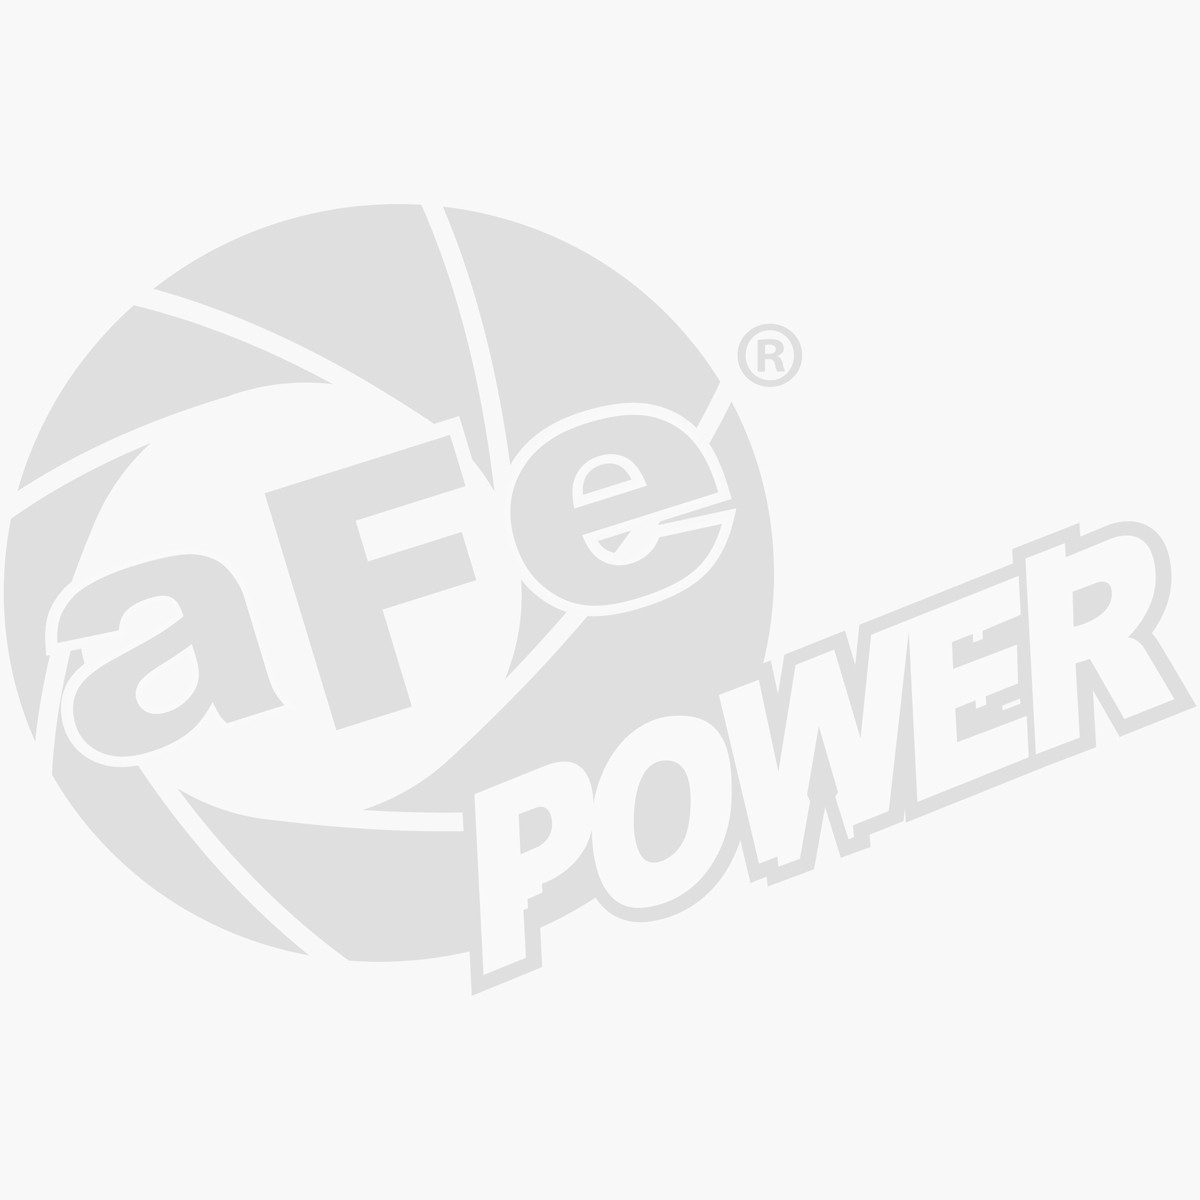 aFe POWER 18-10955 Round Racing Pro 5R Air Filter